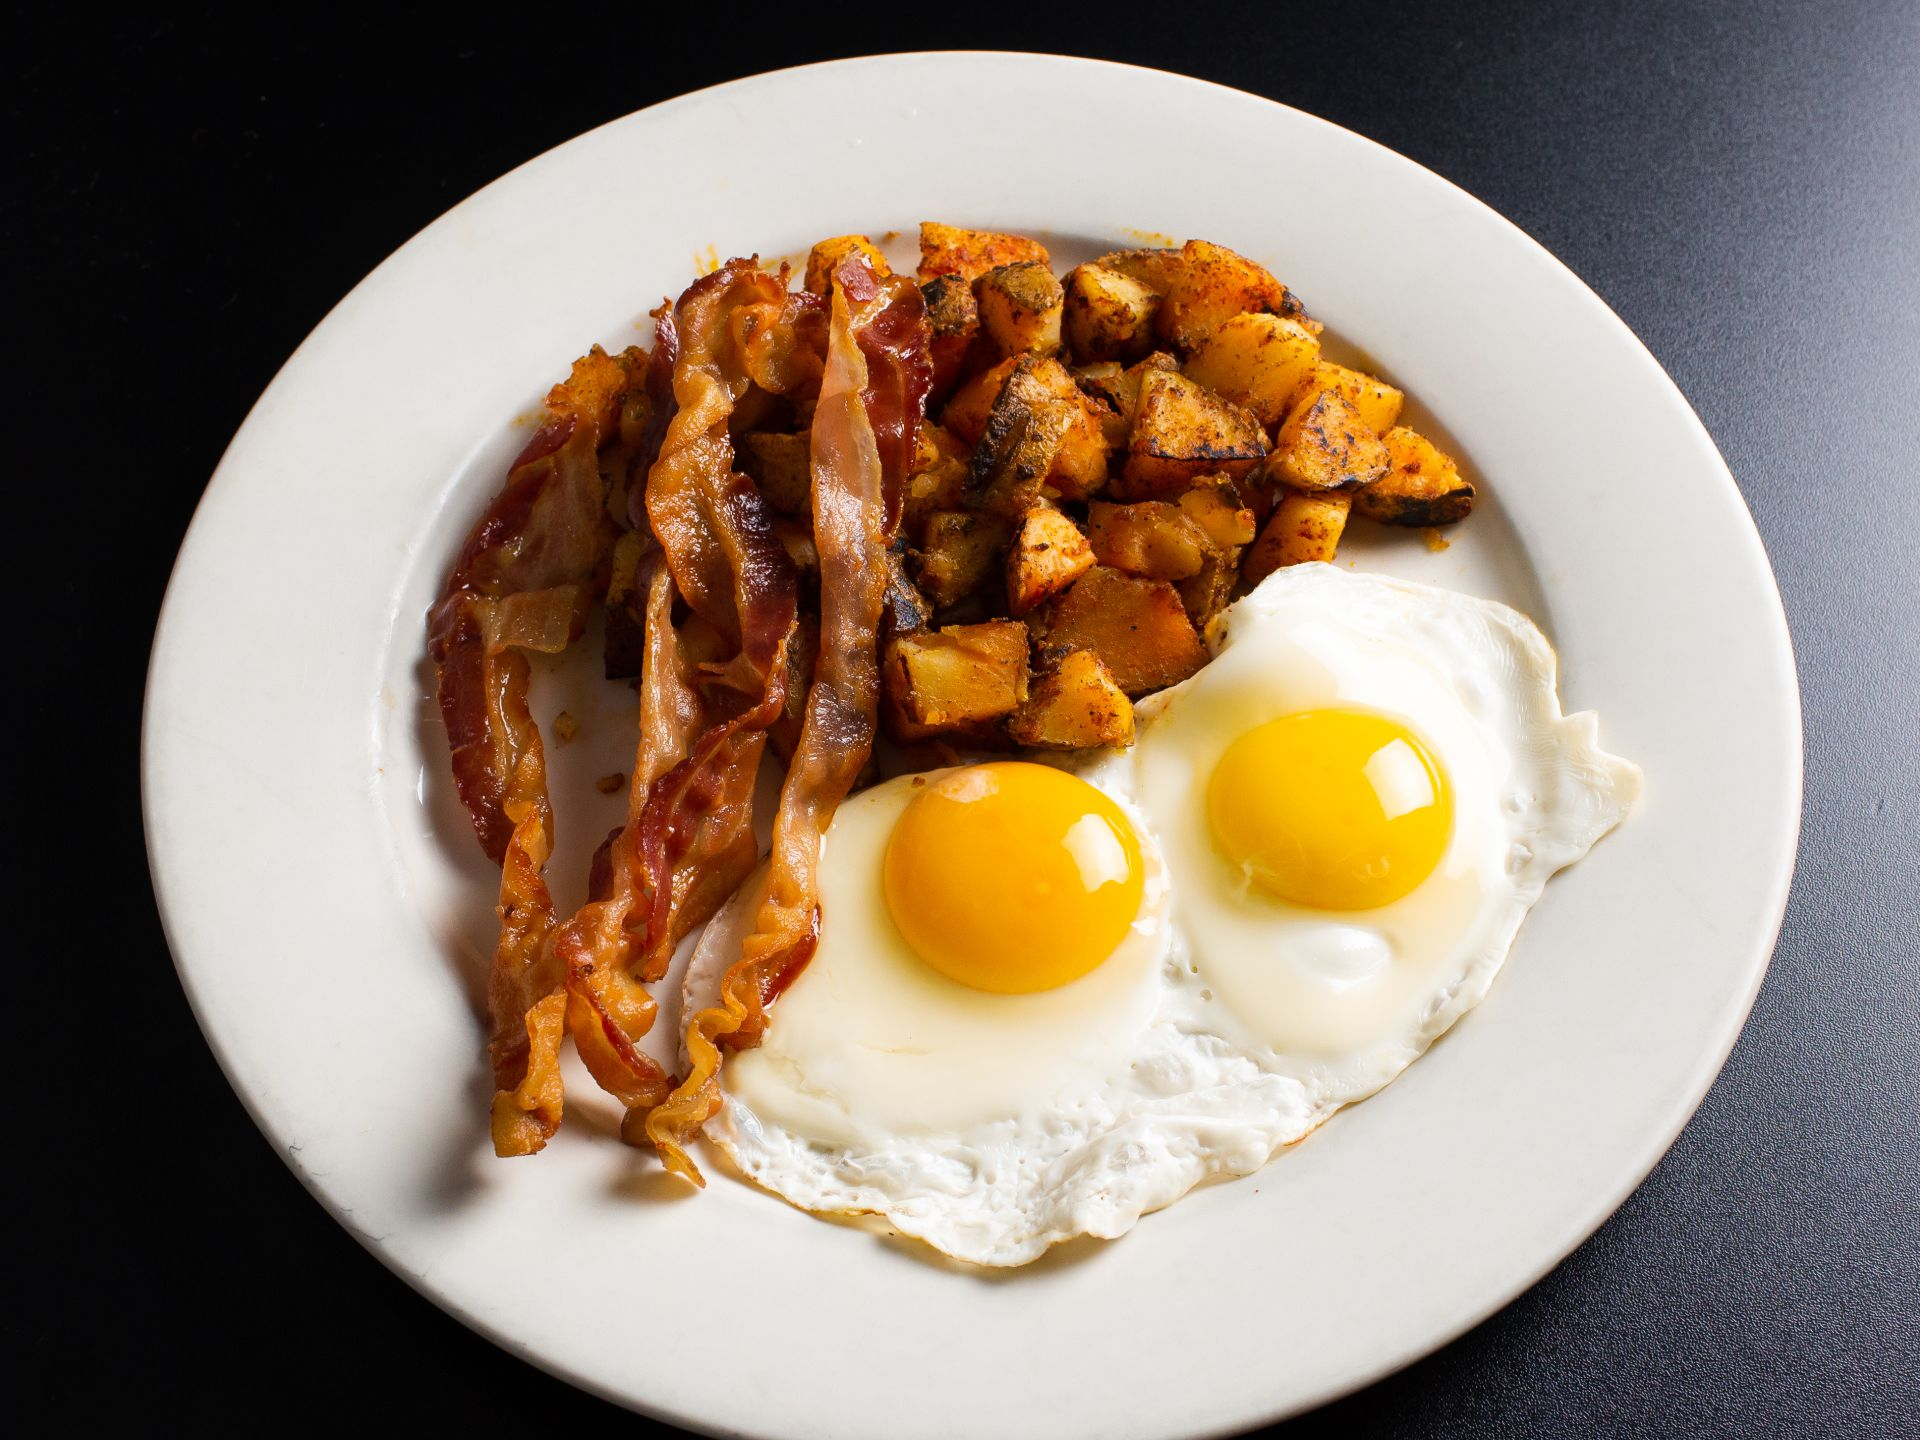 Two fried eggs sunny side up with bacon and potatoes